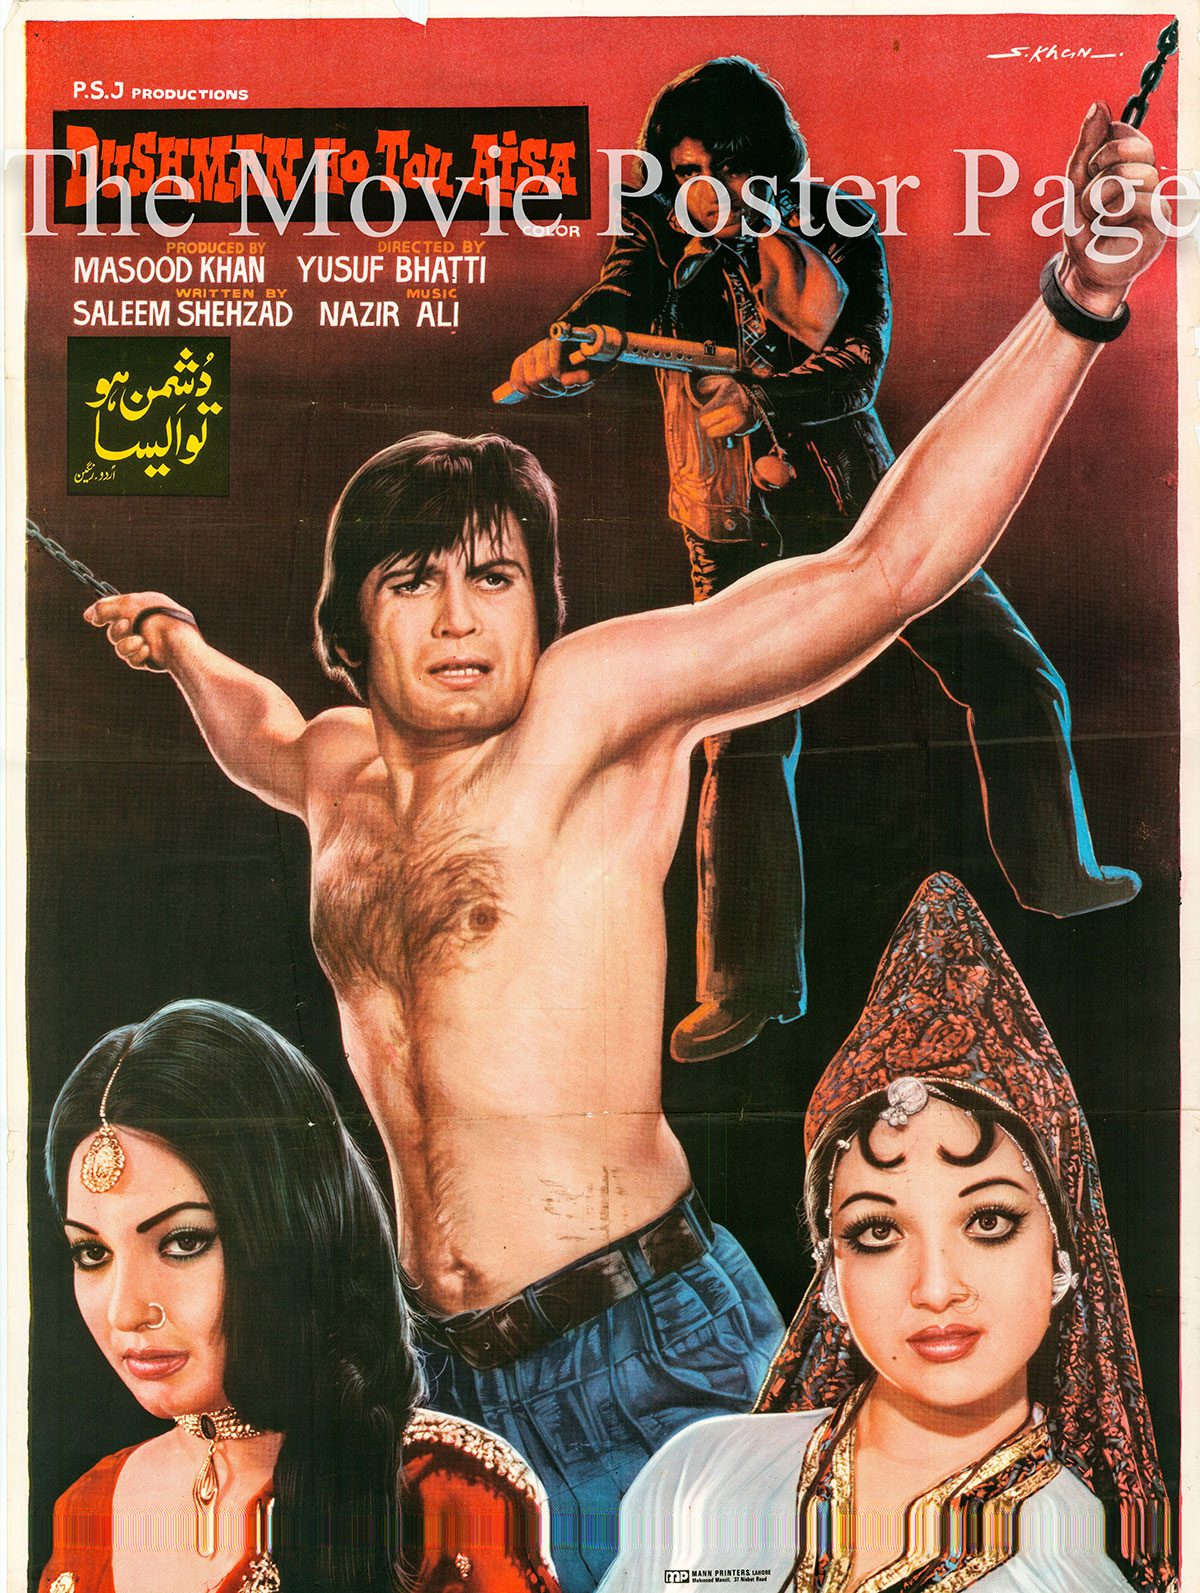 Pictured is a Pakistani poster for the Masood Khan film Dushman ho Tou Asia.